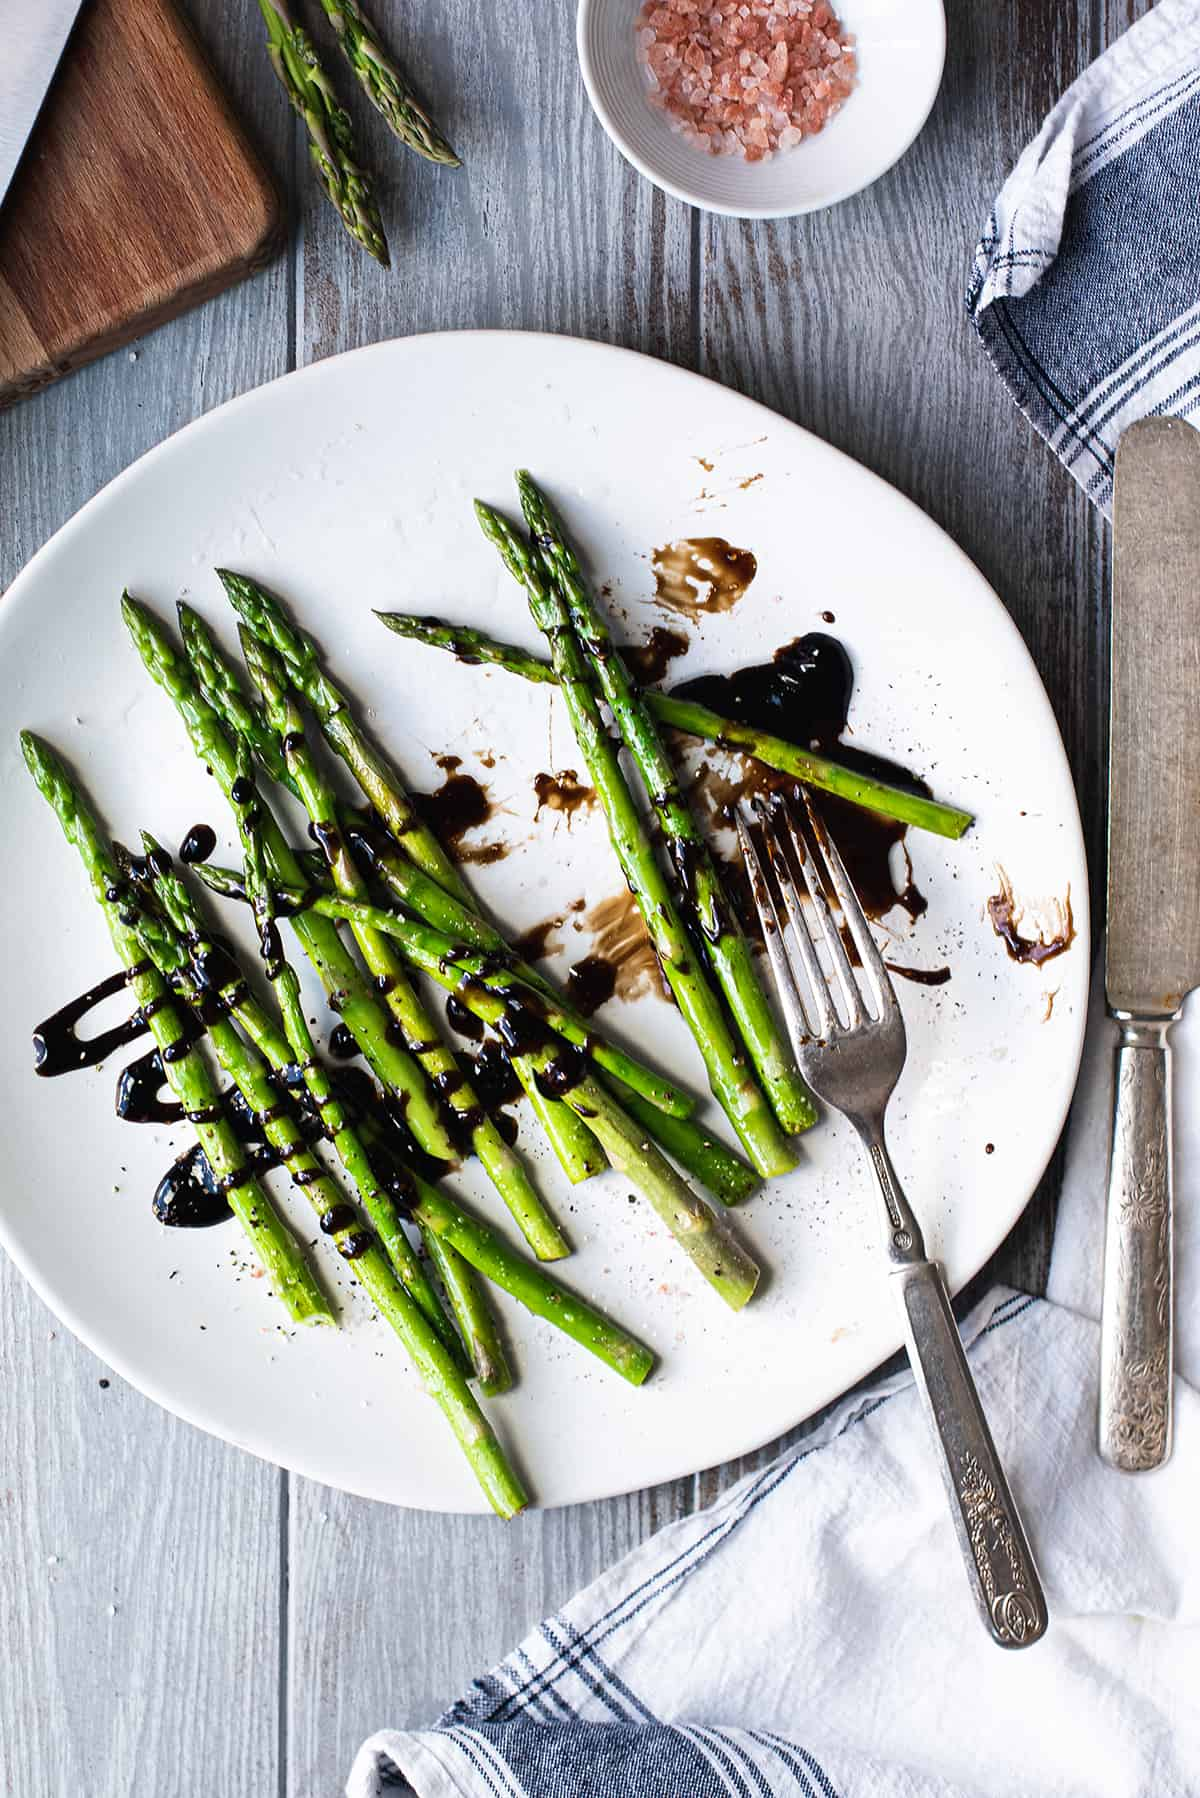 messy asparagus on plate with balsamic reduction and fork